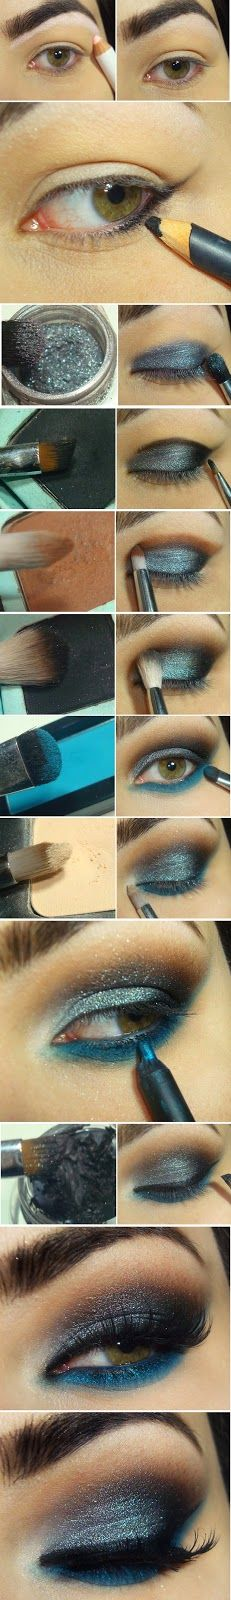 Leaded Shade and Blue Makeup Tutorials / Best LoLus Makeup Fashion